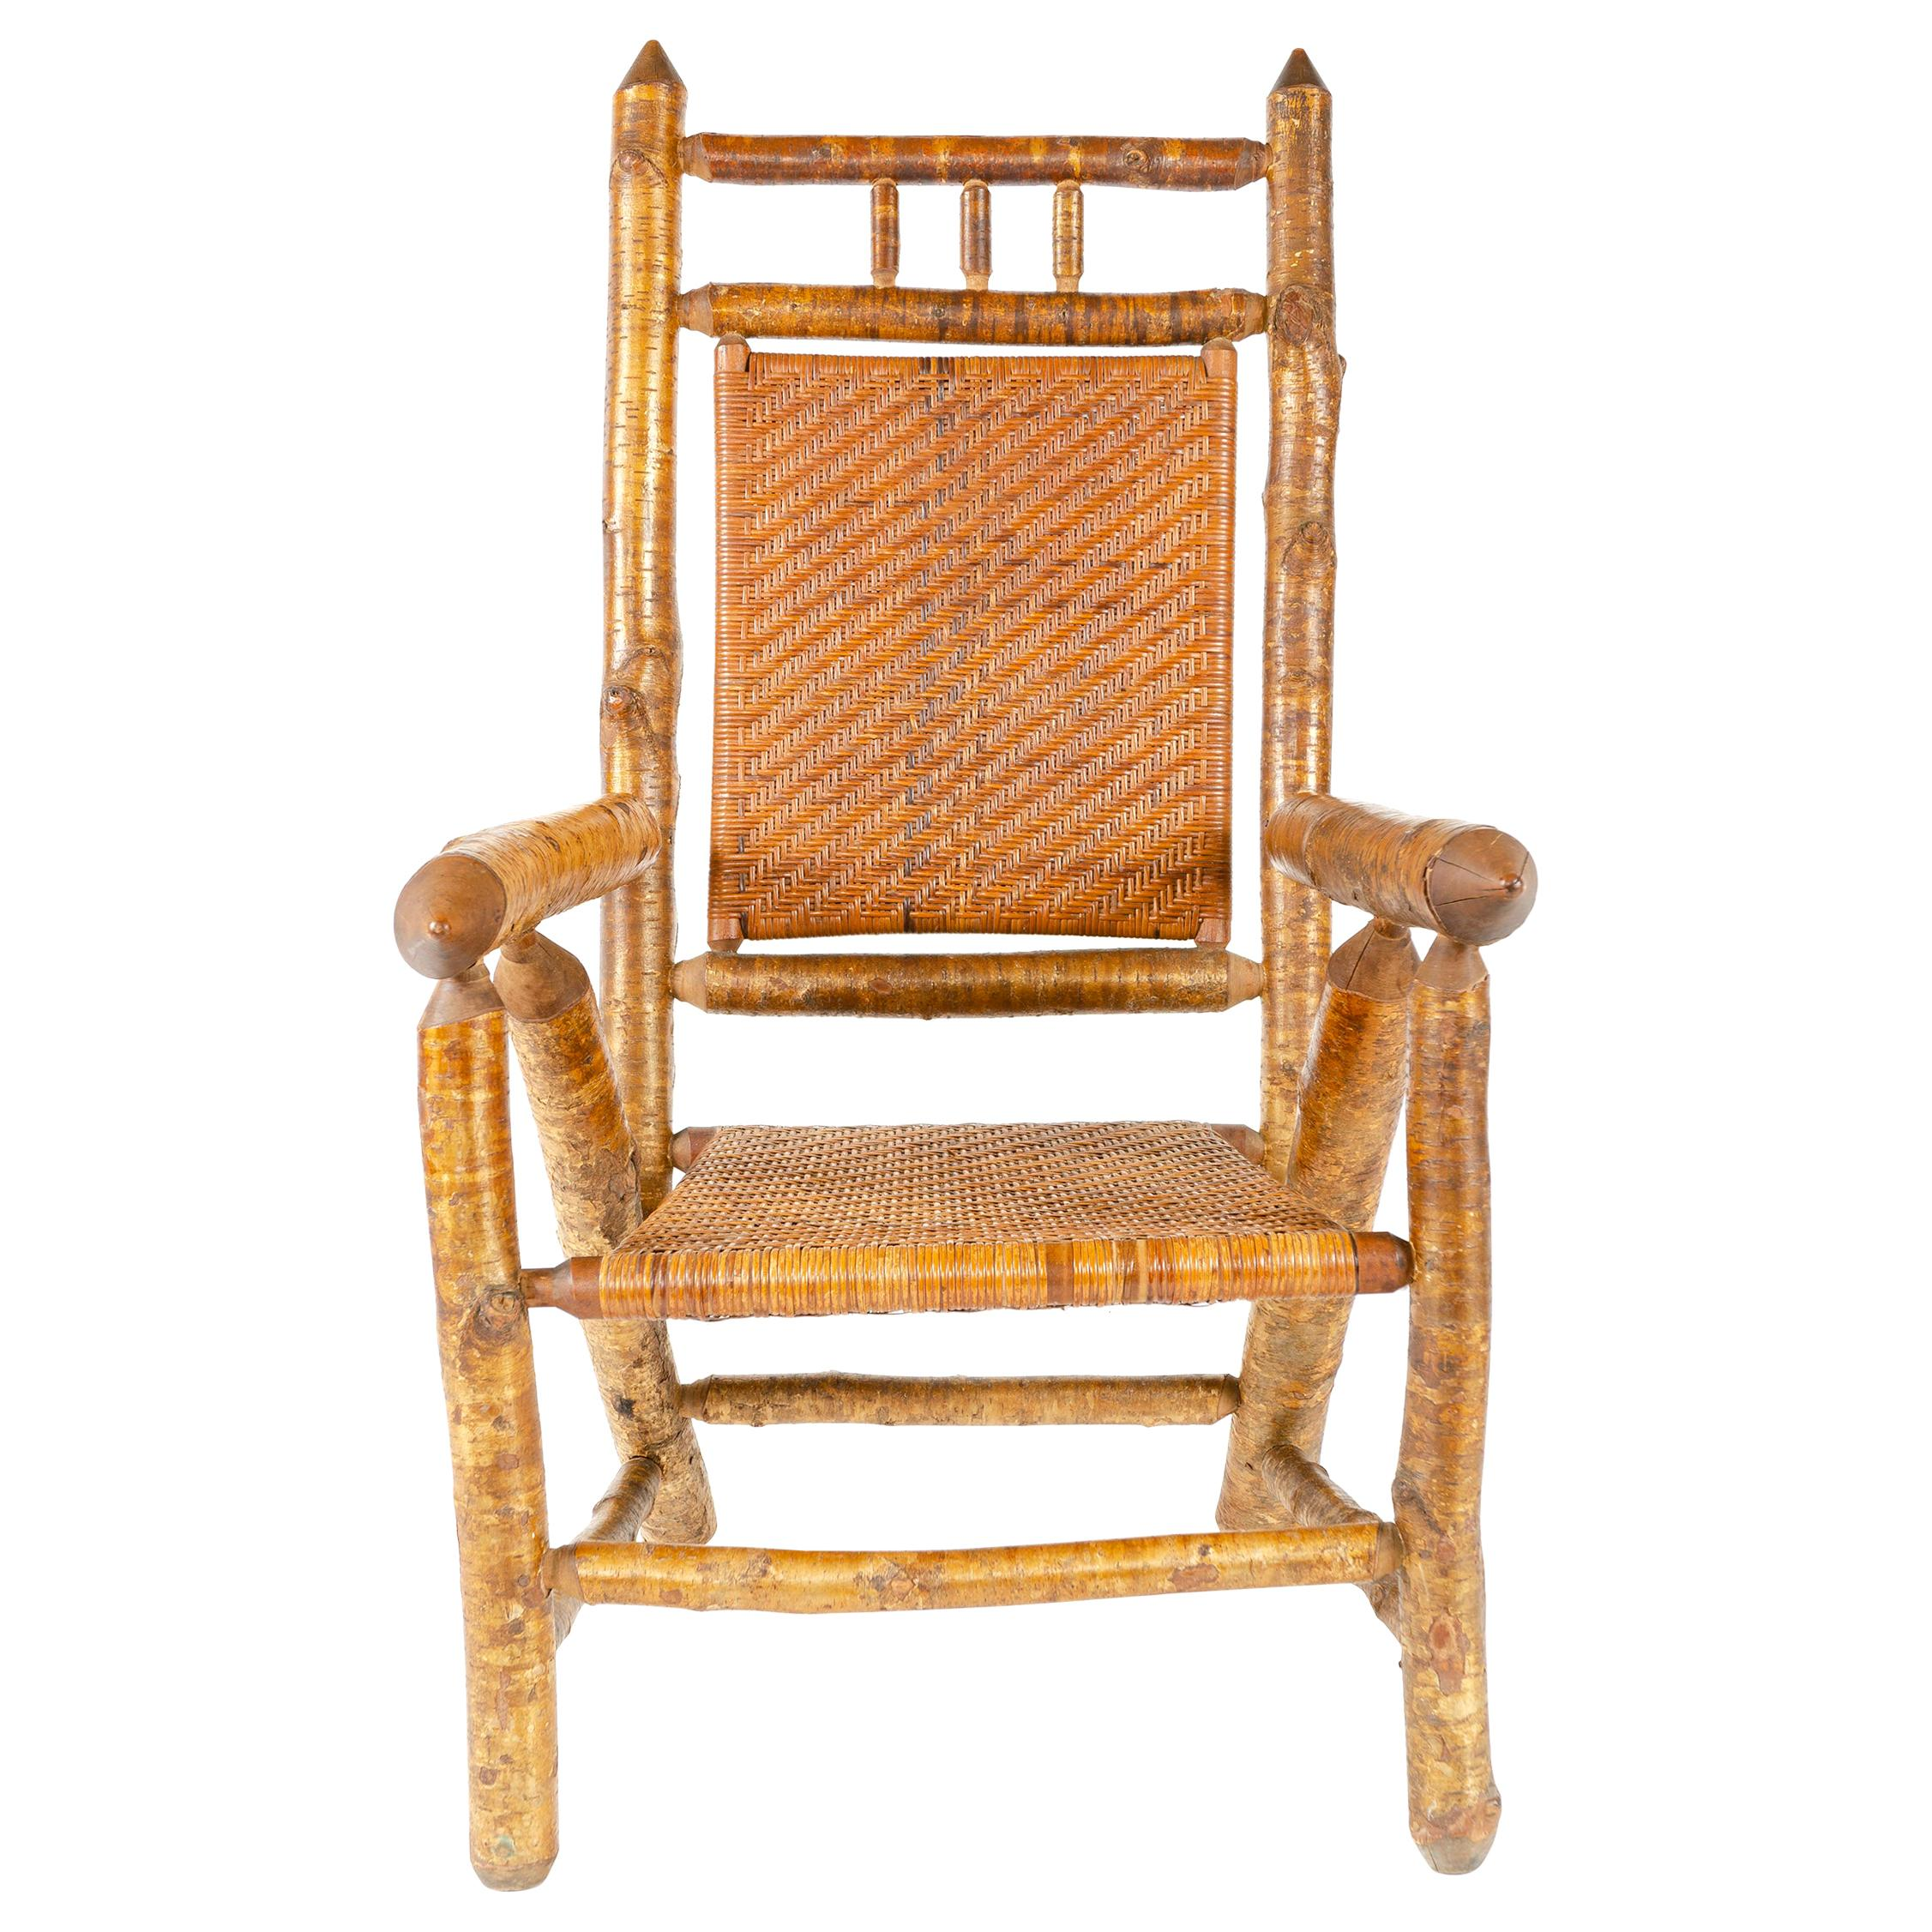 1920s Silver Birch Armchair by H.C. Dexter Chair Company